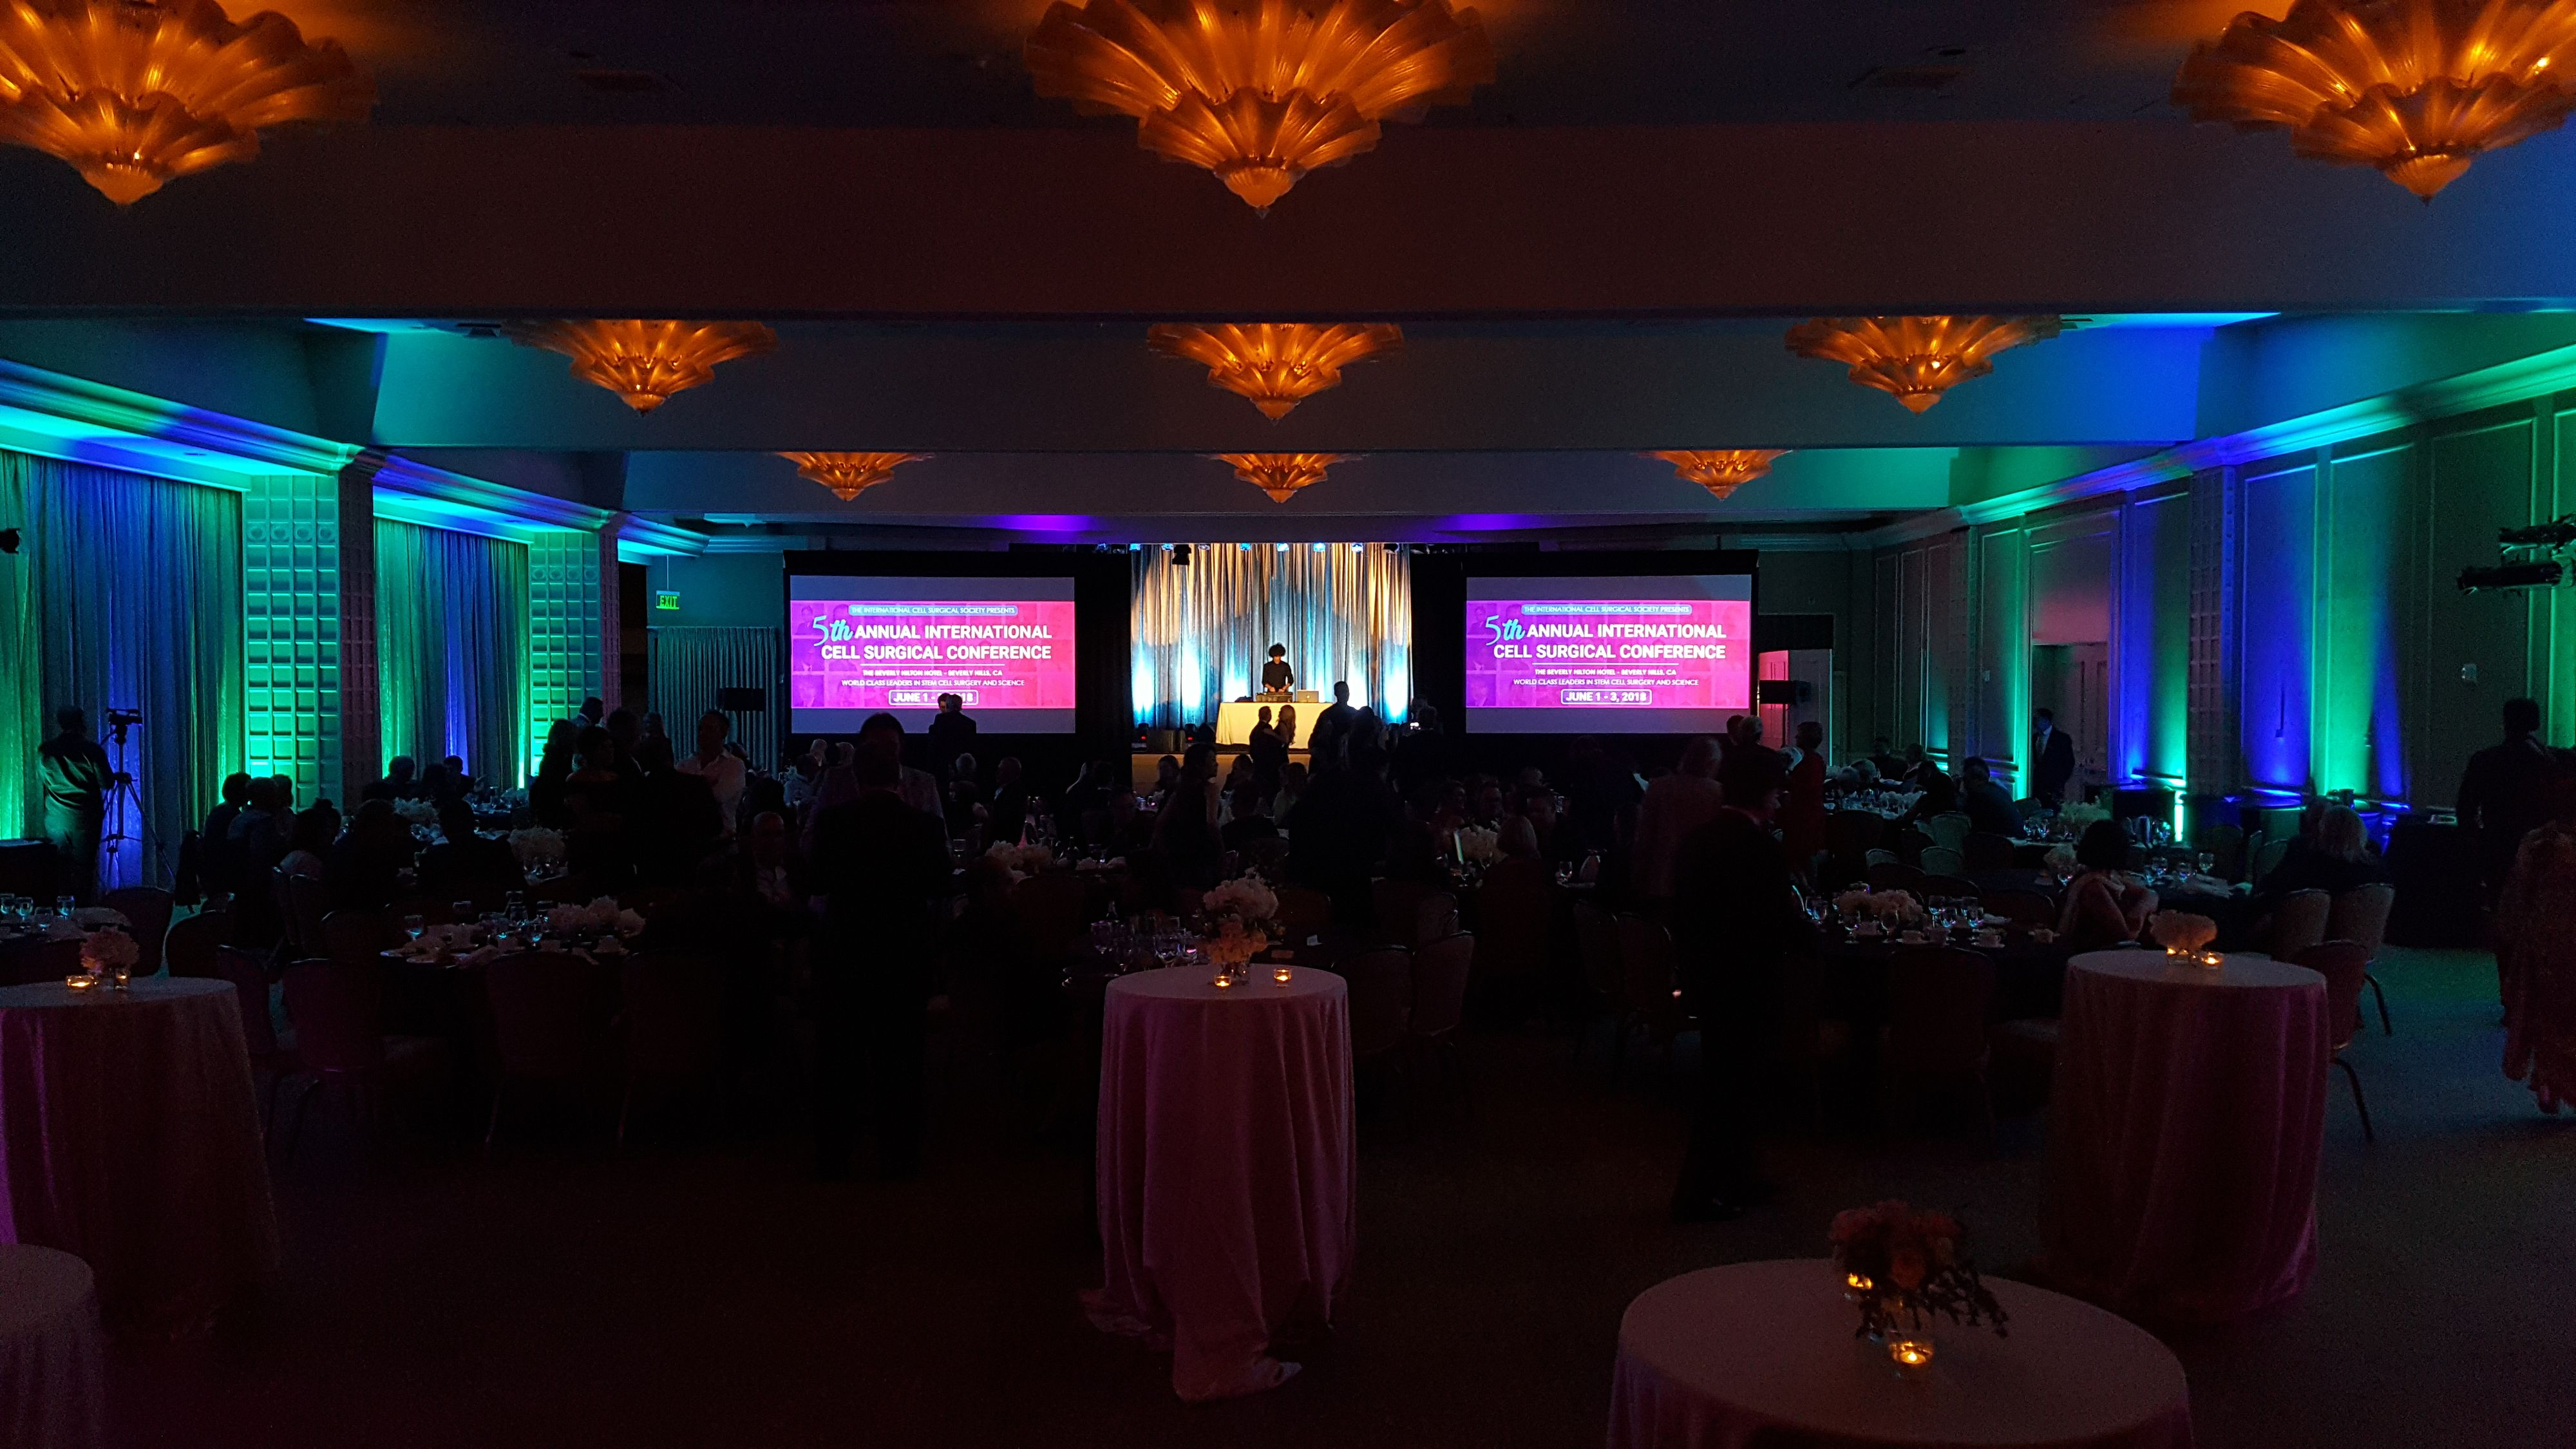 An image of uplighting at a gala in a hotel ballroom